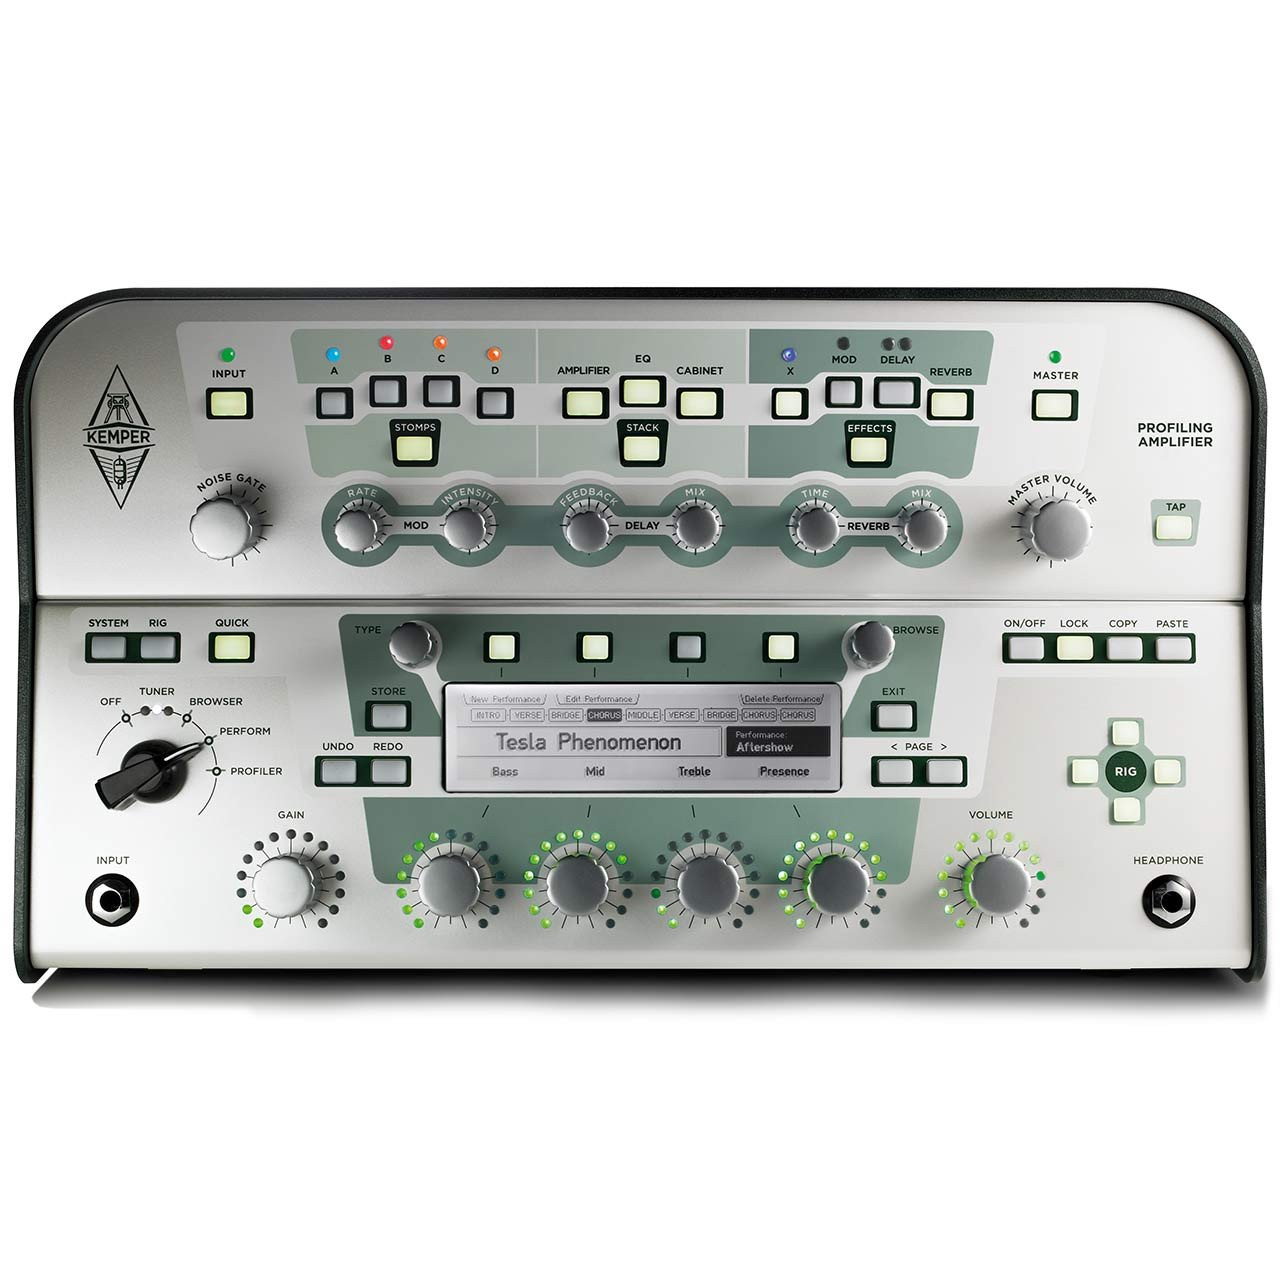 Guitar Amplifiers - Kemper Profiler Head - Profiling Amplifier White